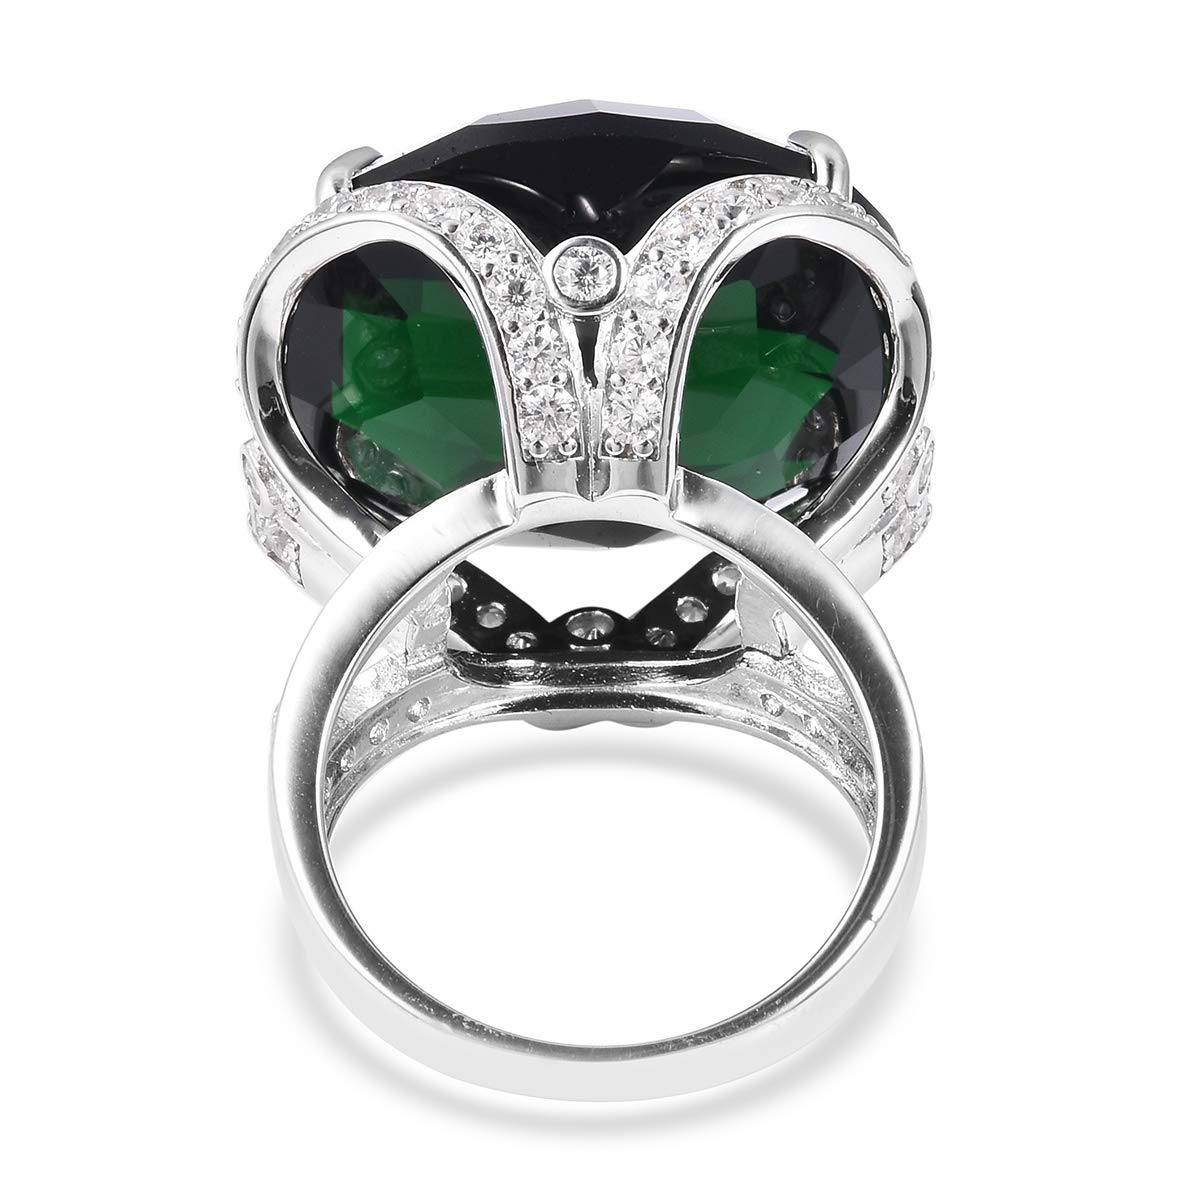 Shop LC Delivering Joy Statement Ring Green Glass White Cubic Zirconia CZ Jewelry for Women Size 6